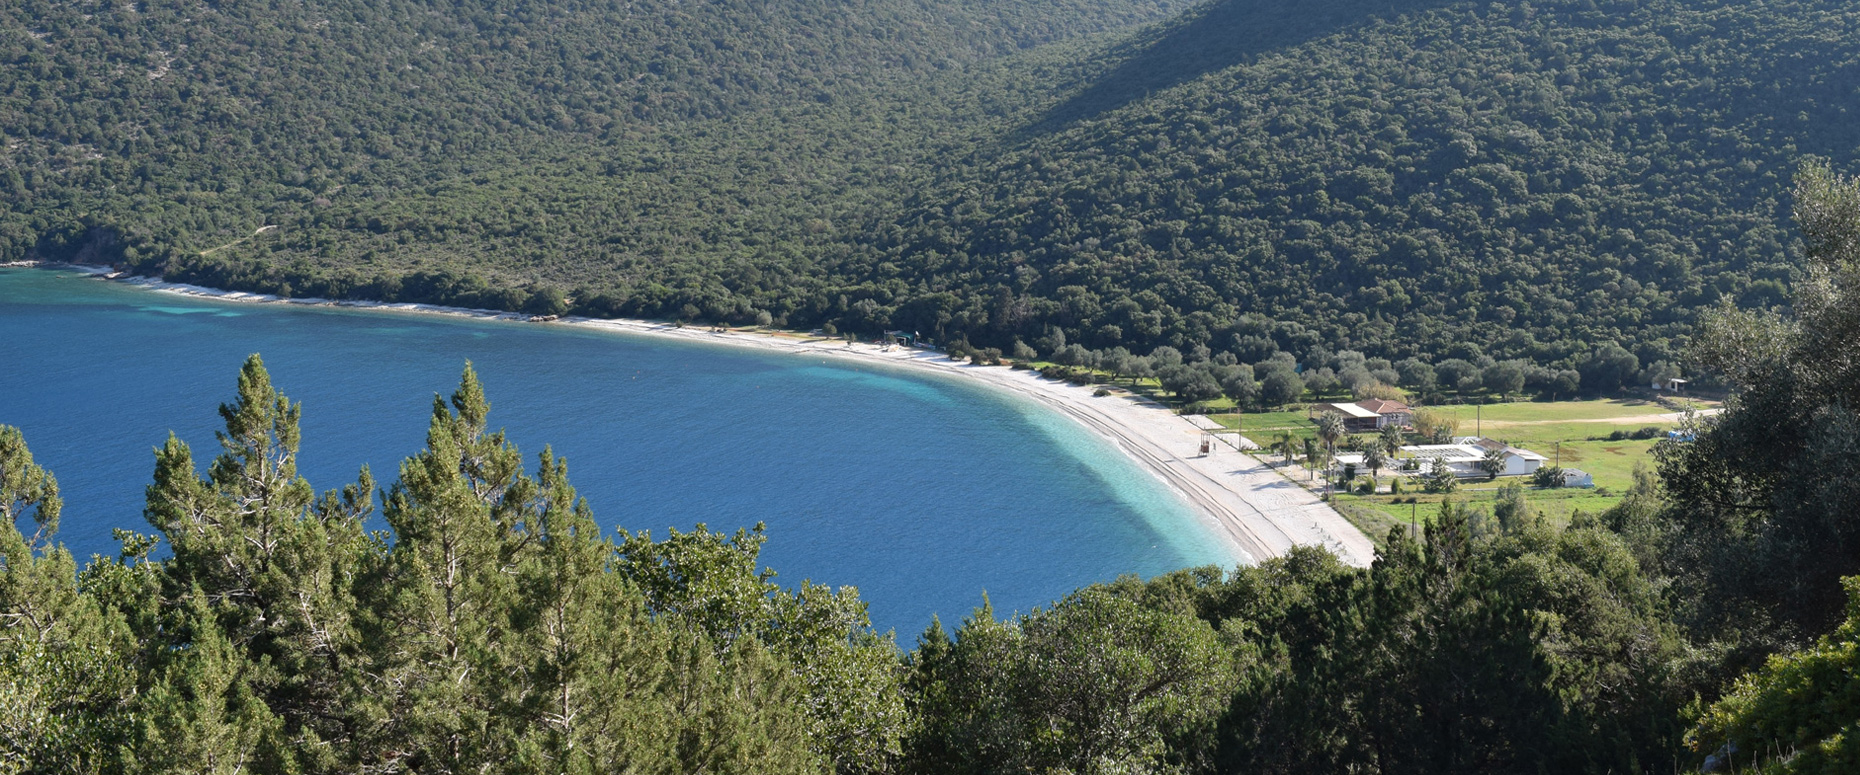 sami_kefalonia_greece_02